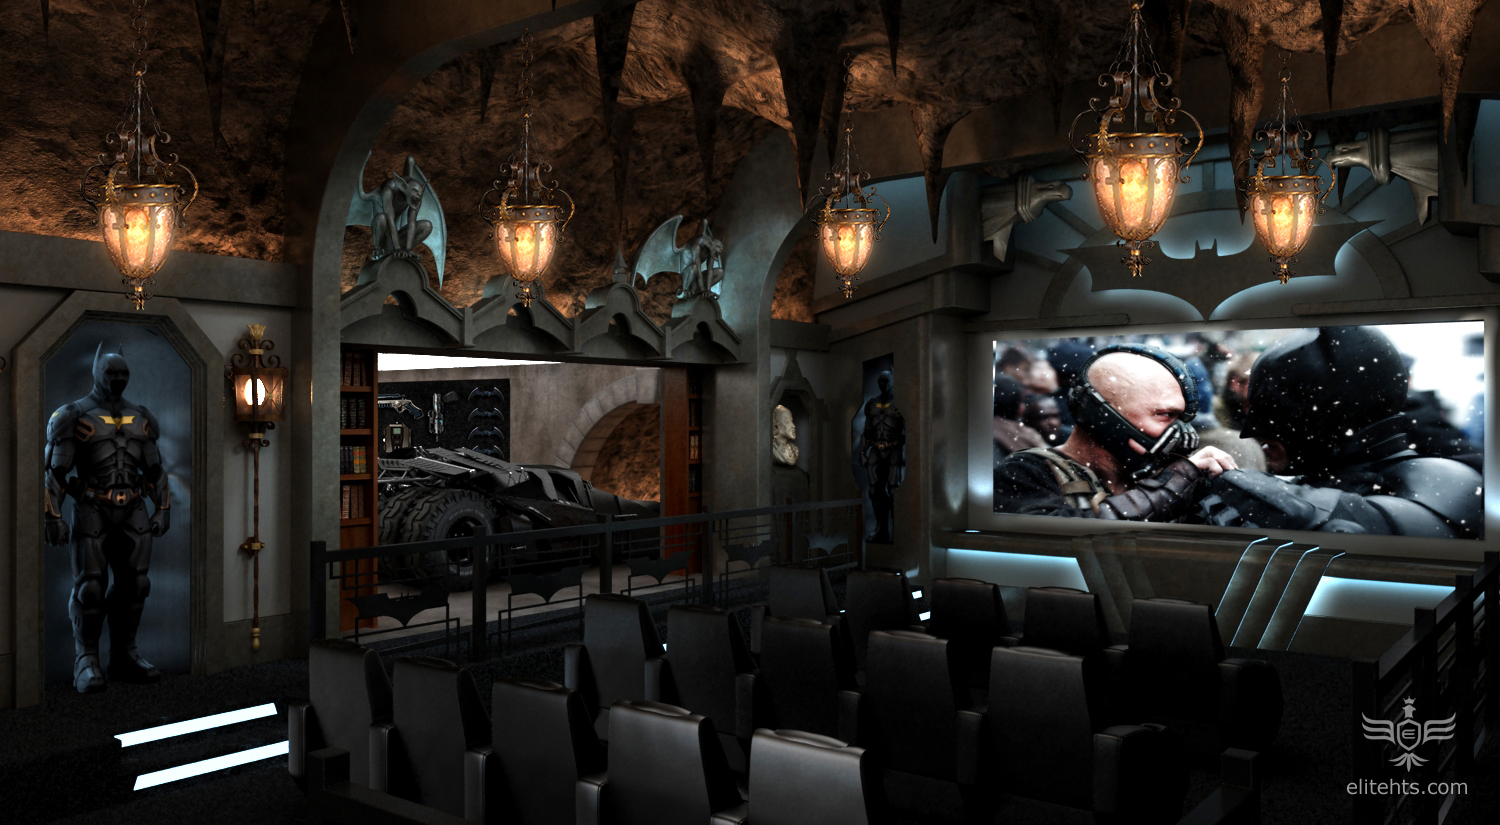 Random Cool Dark Knight Themed Home Theater For Only 2 Million